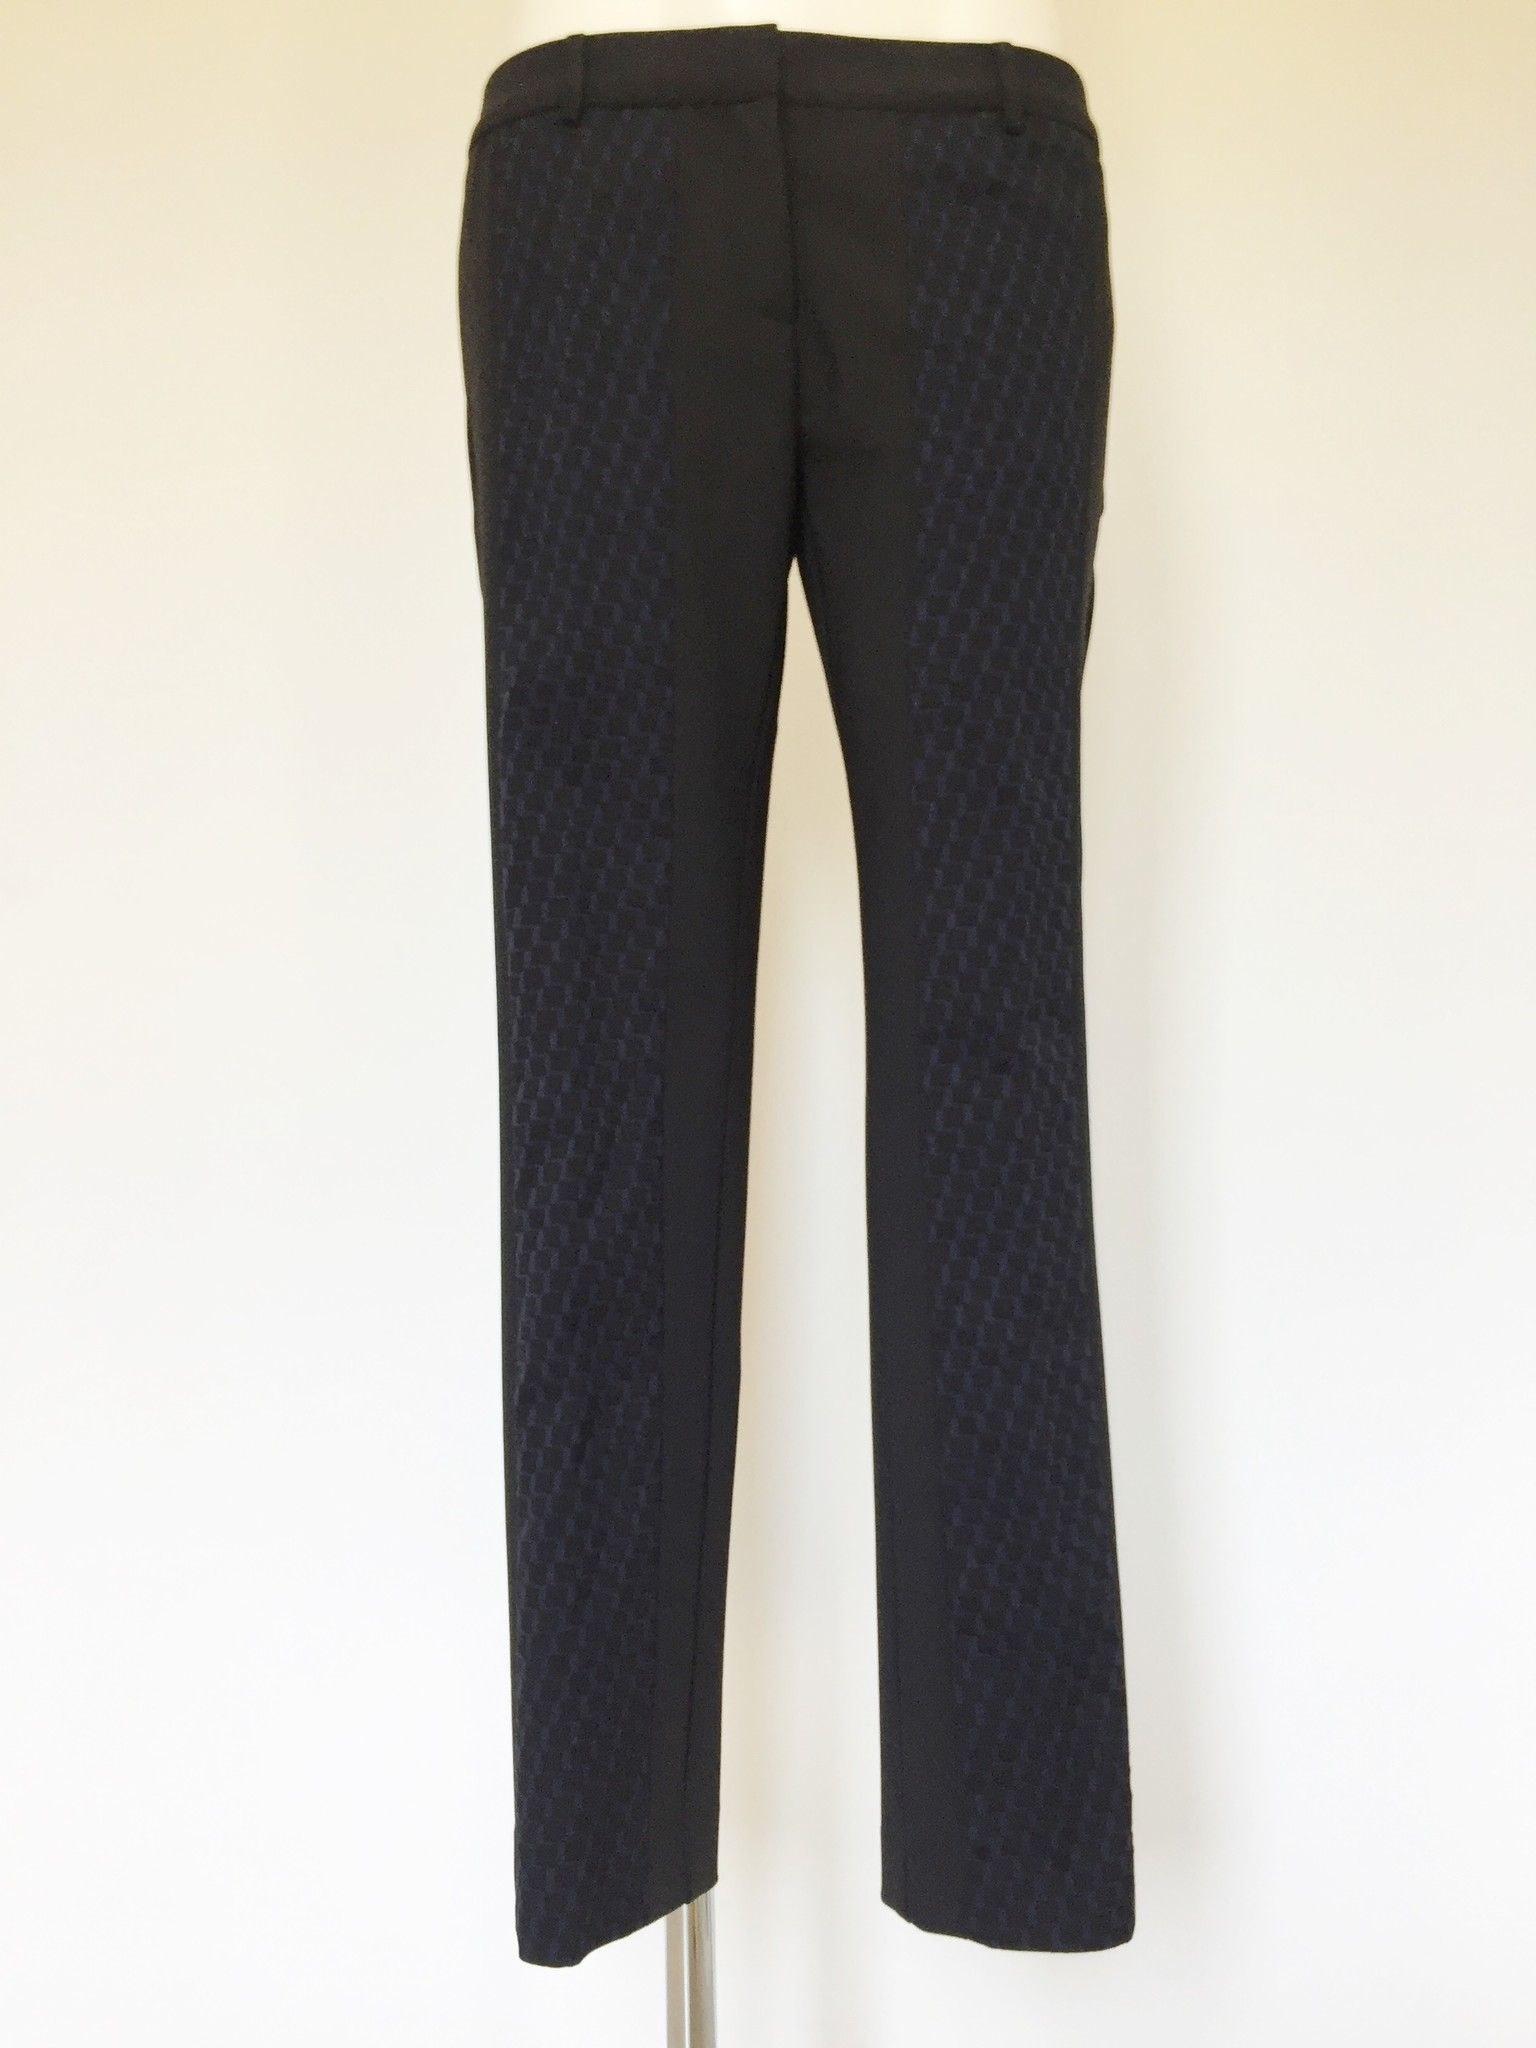 Sapce Trousers with Checked Fancy Insert Cod.AI134016